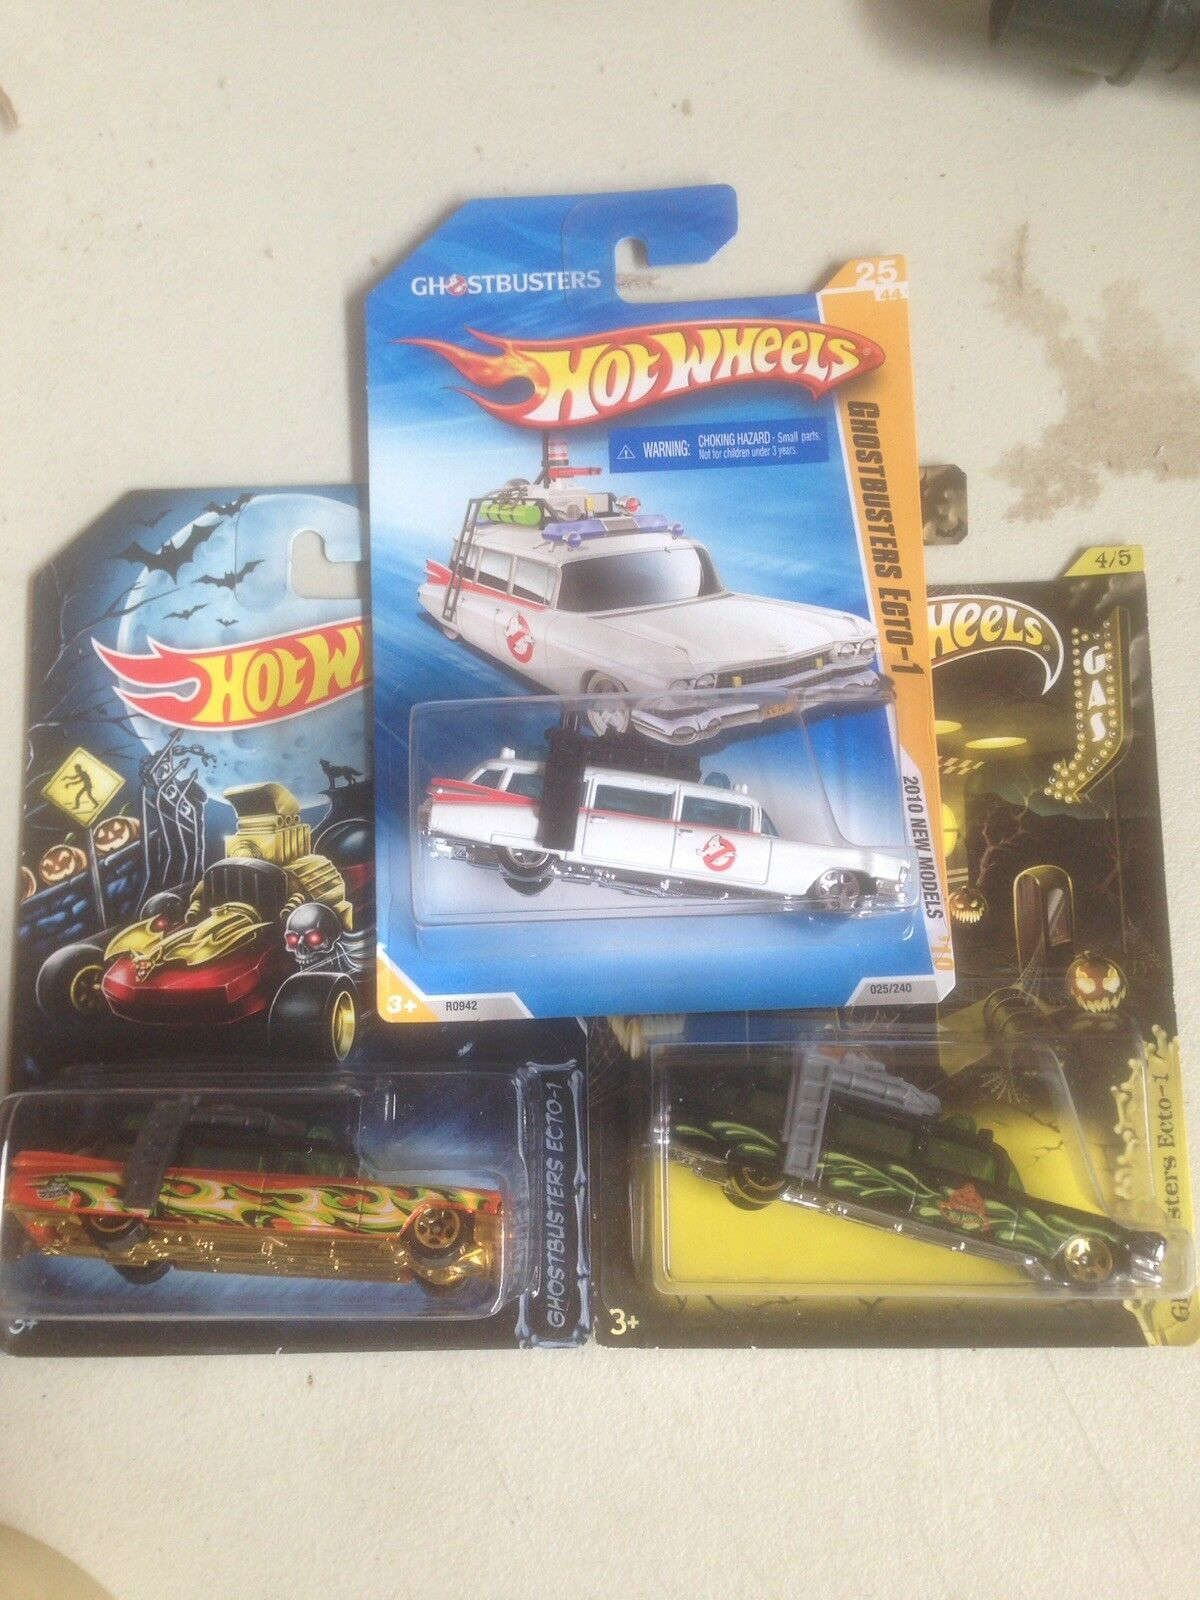 HOTWHEELS GHOSTBUSTERS ETCO-1 SET OF 3 - BRAND NEW